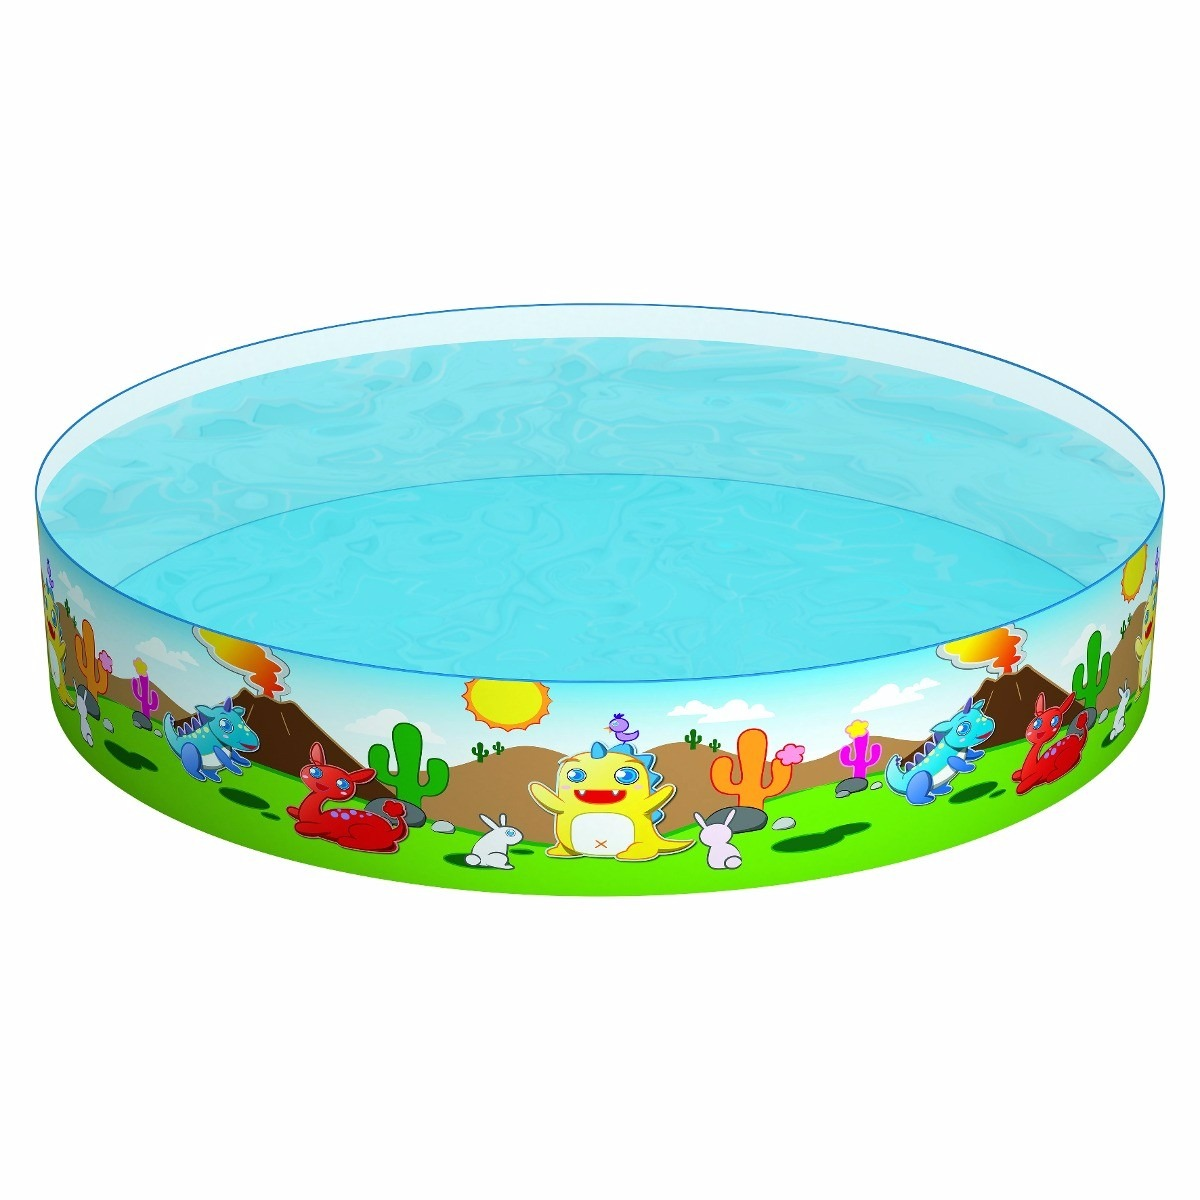 Piscina para ni os y ni as infantil x 38cm 7 for Piscinas infantiles